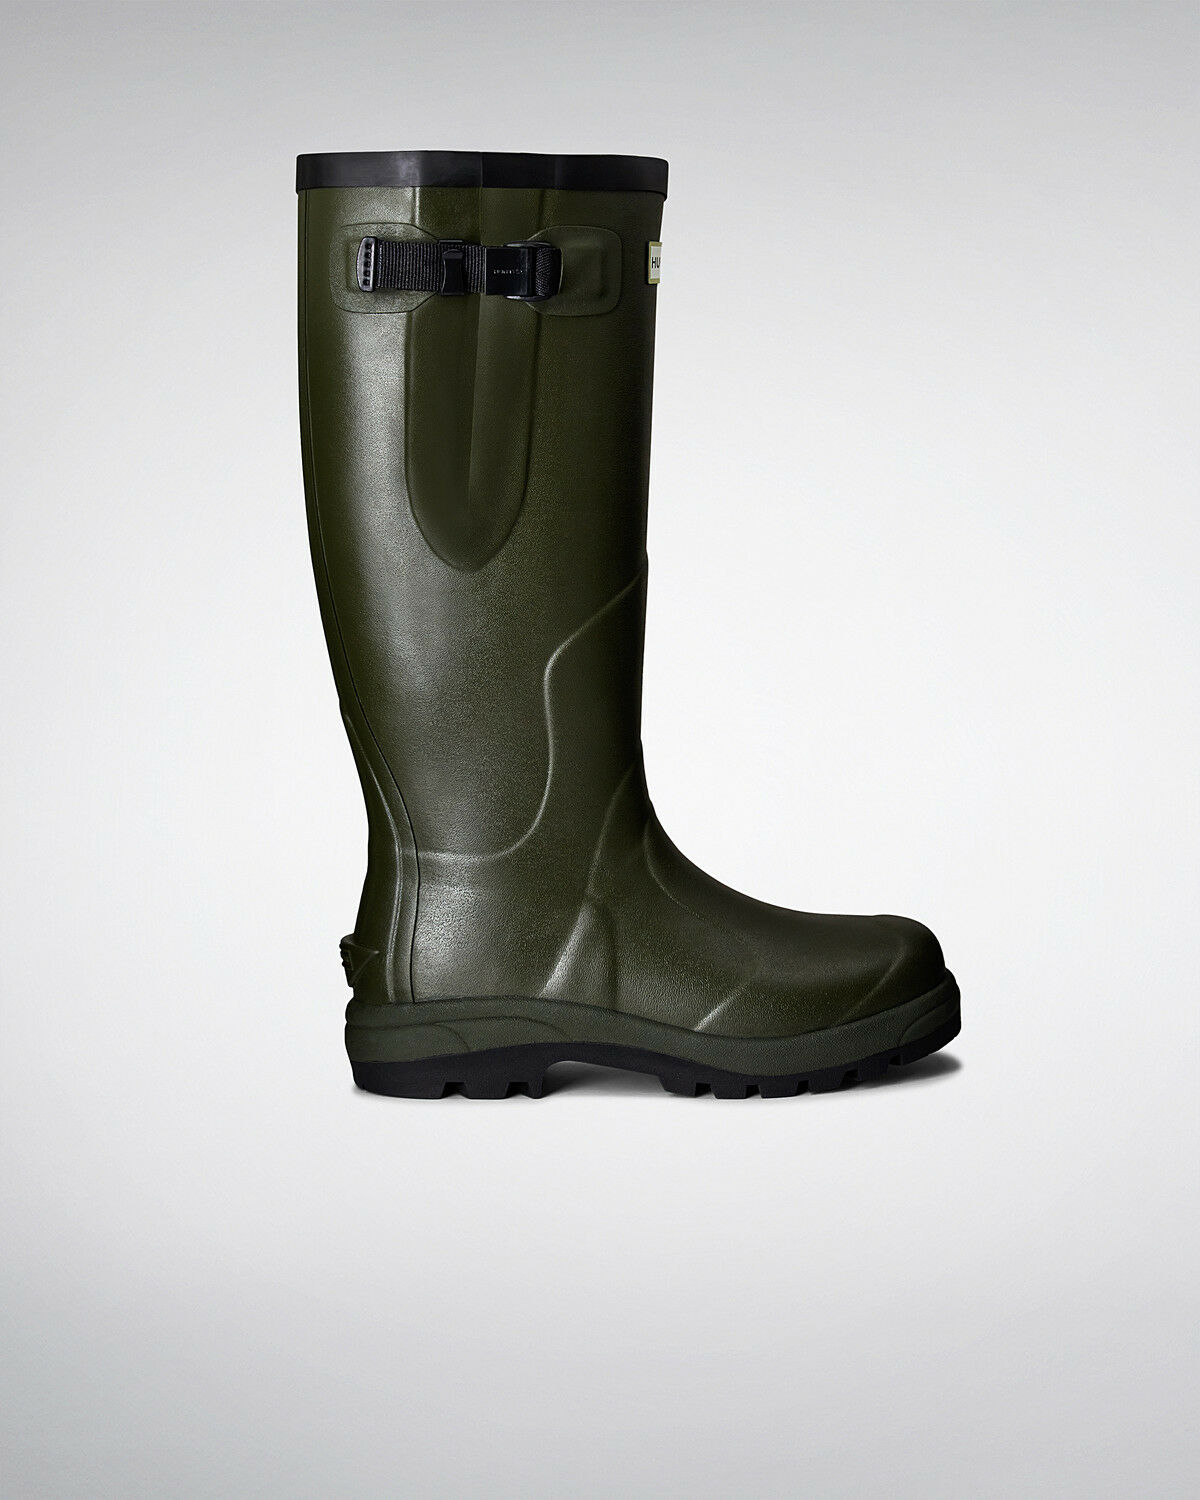 Hunter Wellington Stiefel Wellies Welly Balmoral Classic Olive Größe UK 12 Eu 47